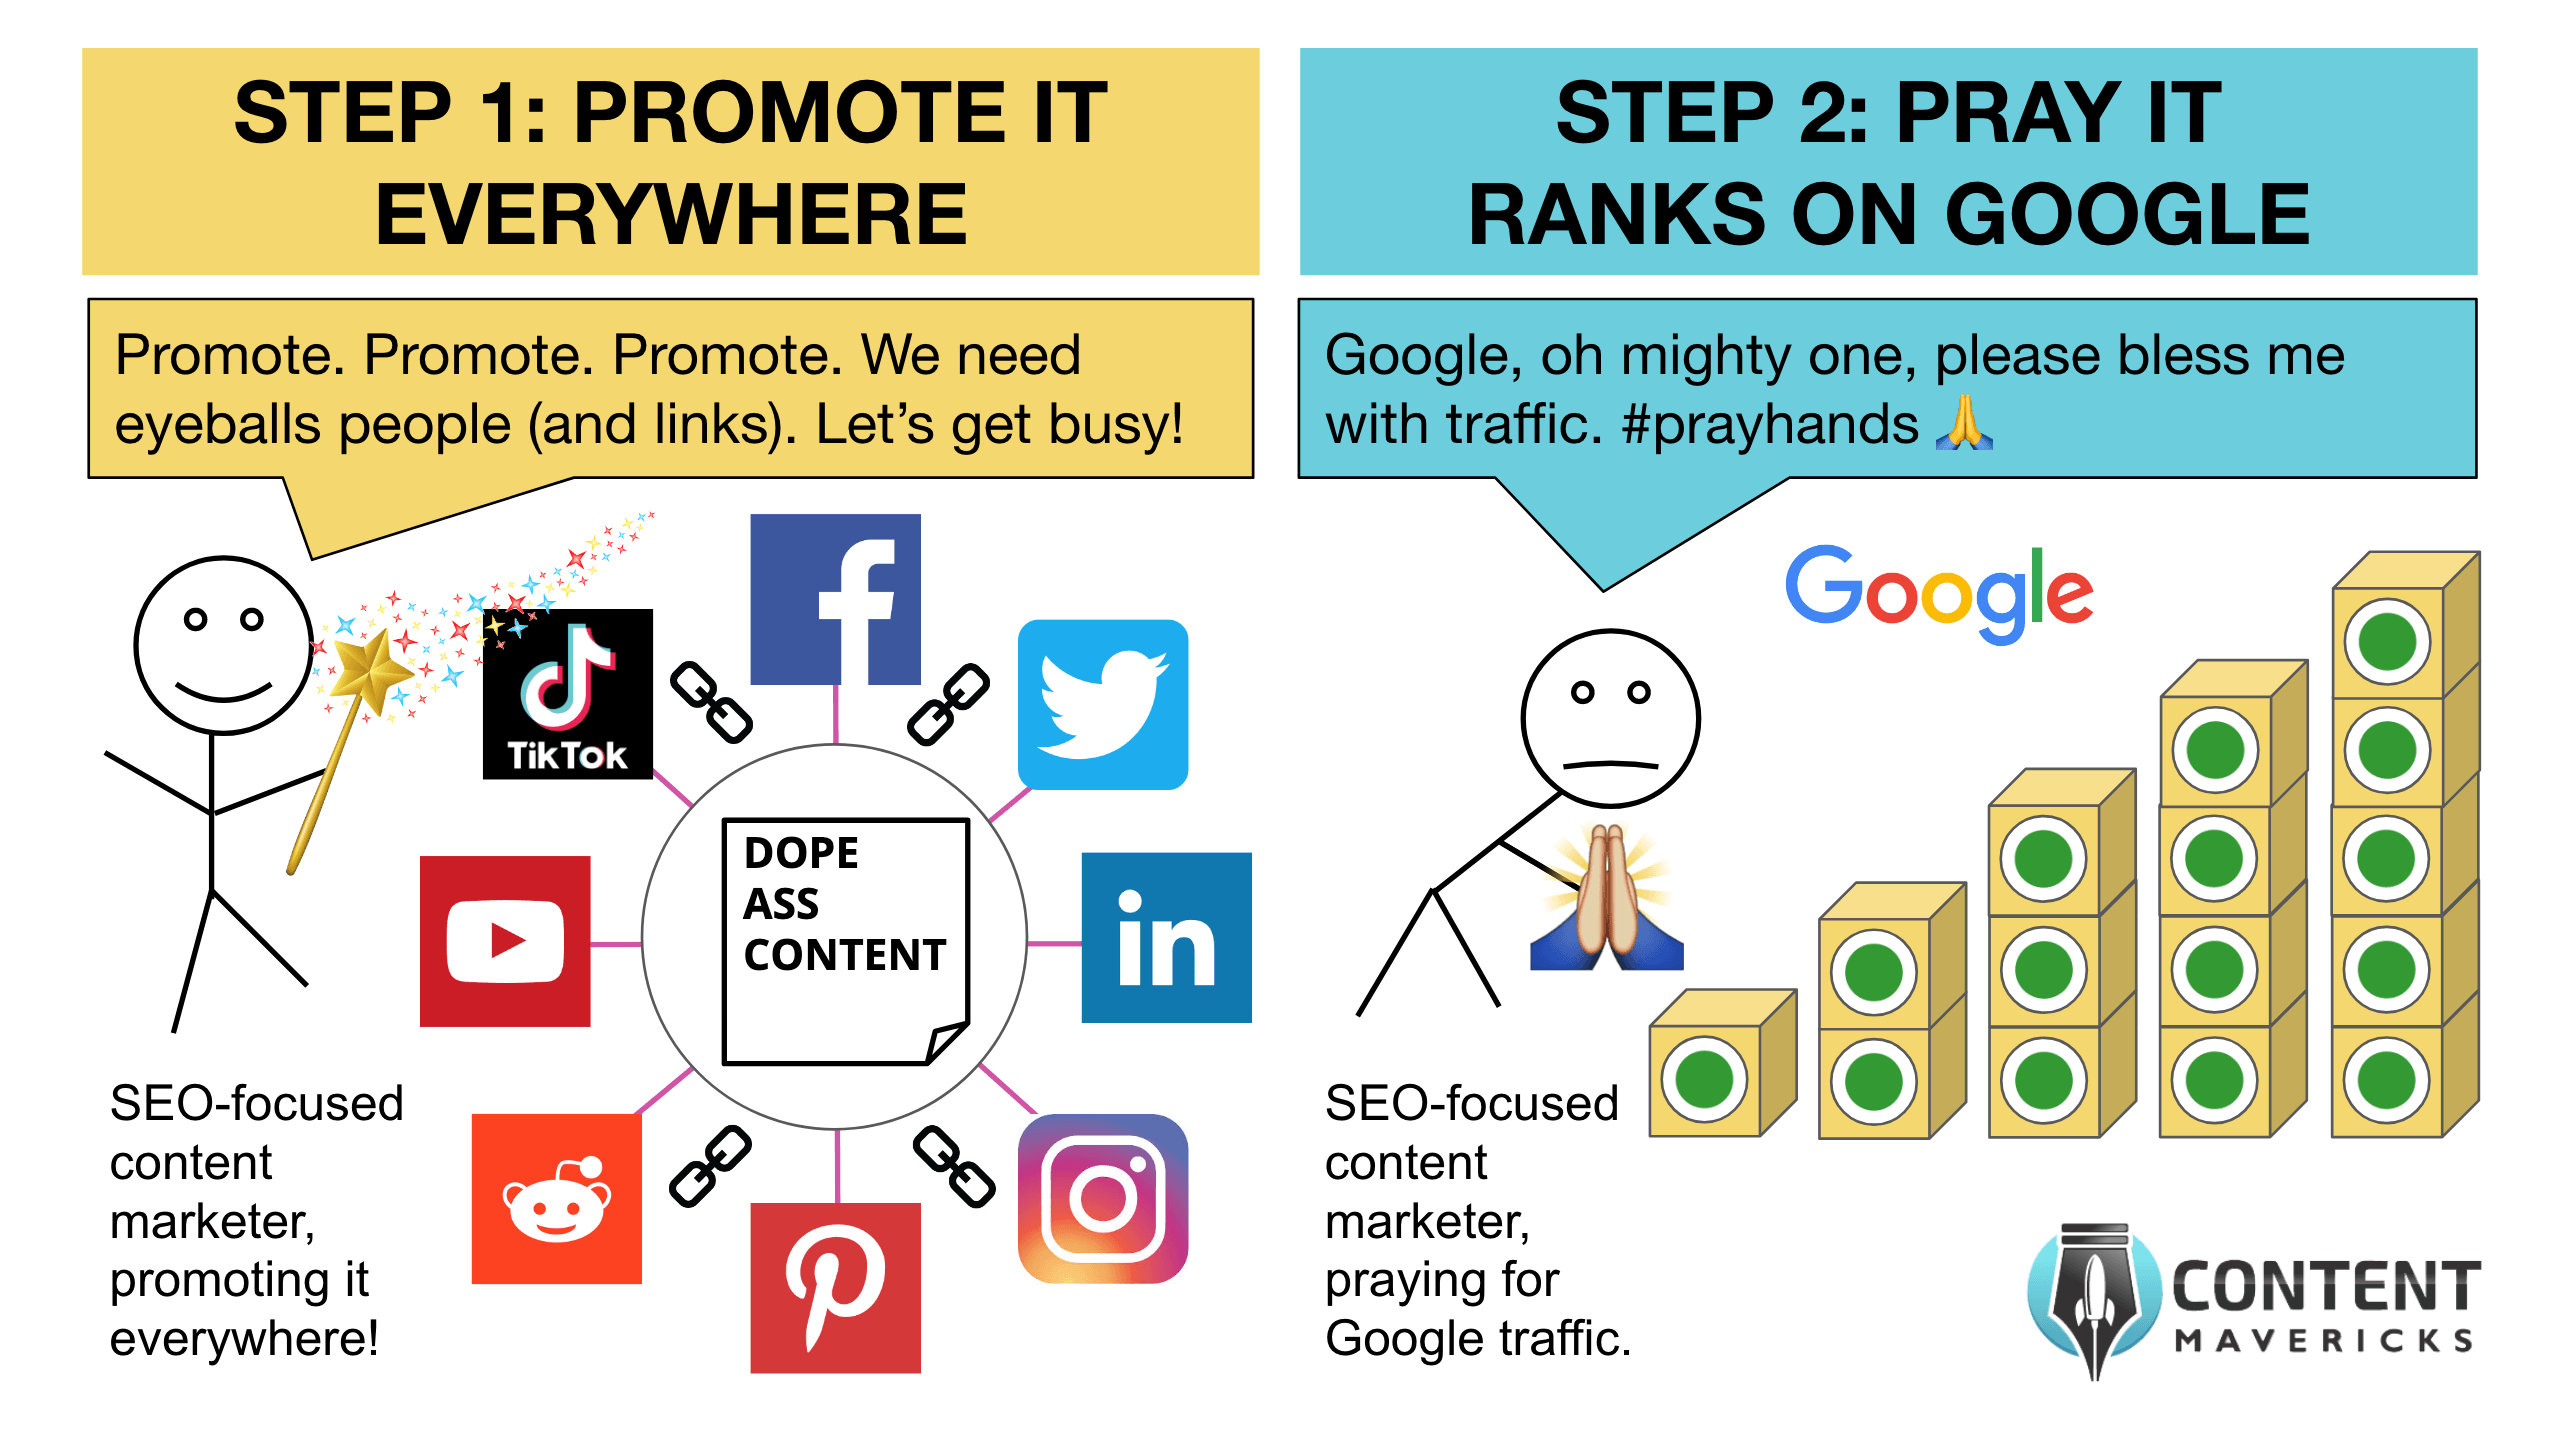 seo vs content marketing image